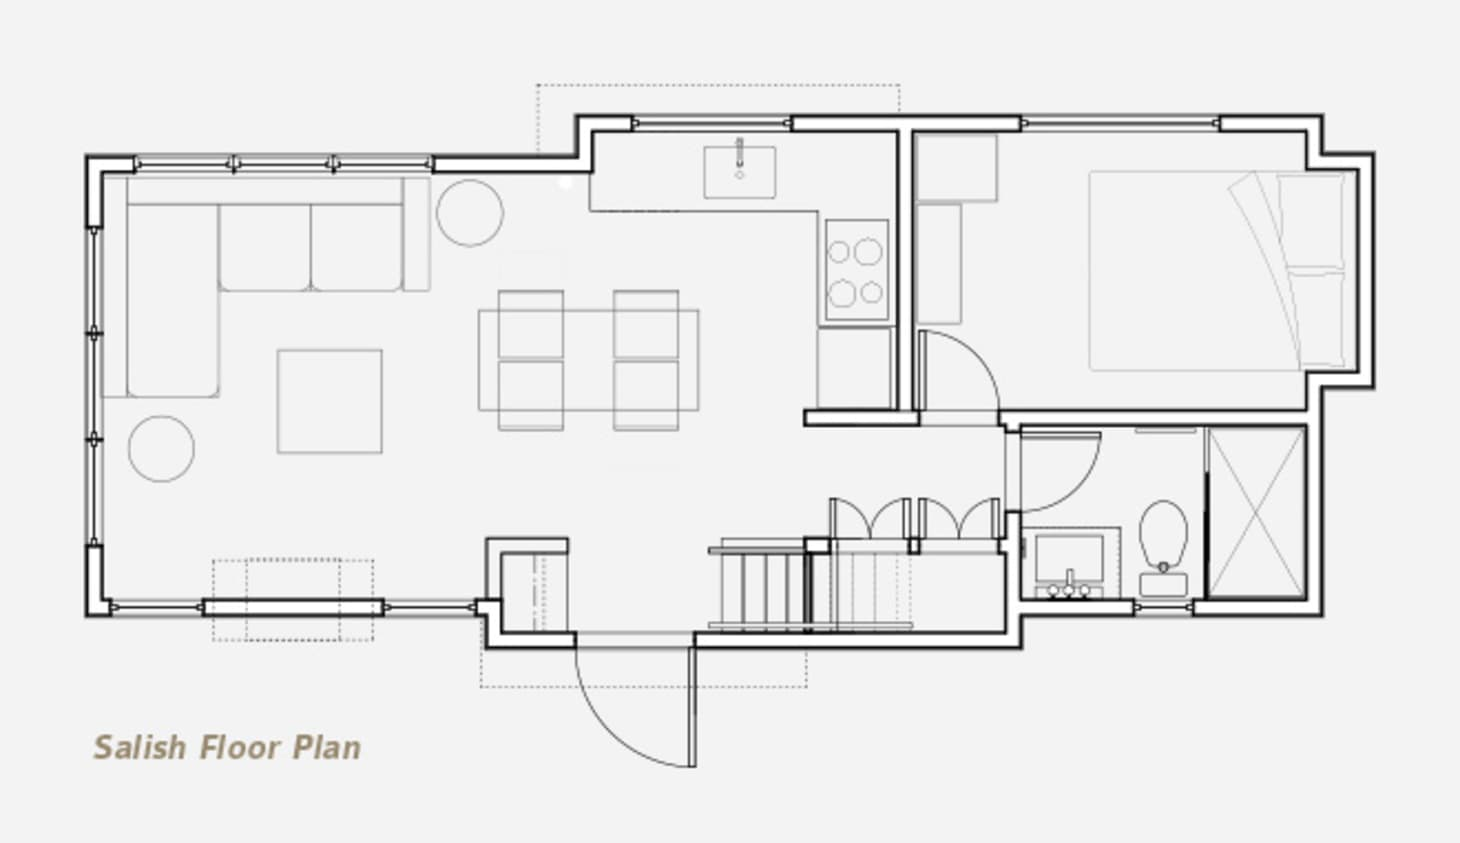 Full One Bedroom Tiny House Layout 400 Square Feet ... Ranch Floor Plans Sq Ft Tiny House on small house designs less than 1000 sq ft, tiny house building plans, unique small house plans under 1000 sq ft, open floor plans 2500 sq ft, tiny house plans under 600 sq ft, small house plans under 1500 sq ft, floor plans for small homes under 1300 sq ft, modular homes 1200 sq ft, house plans under 500 sq ft, beach house with loft under 2000 sq ft, small cabins under 1000 sq ft, mobile home plans under 1000 sq ft, micro houses under 600 sq ft, 2 bedroom 2 bath house plans under 1000 sq ft, modern house plans 1000 sq ft, country home 1800 sq ft, open small house plans under 1000 sq ft,